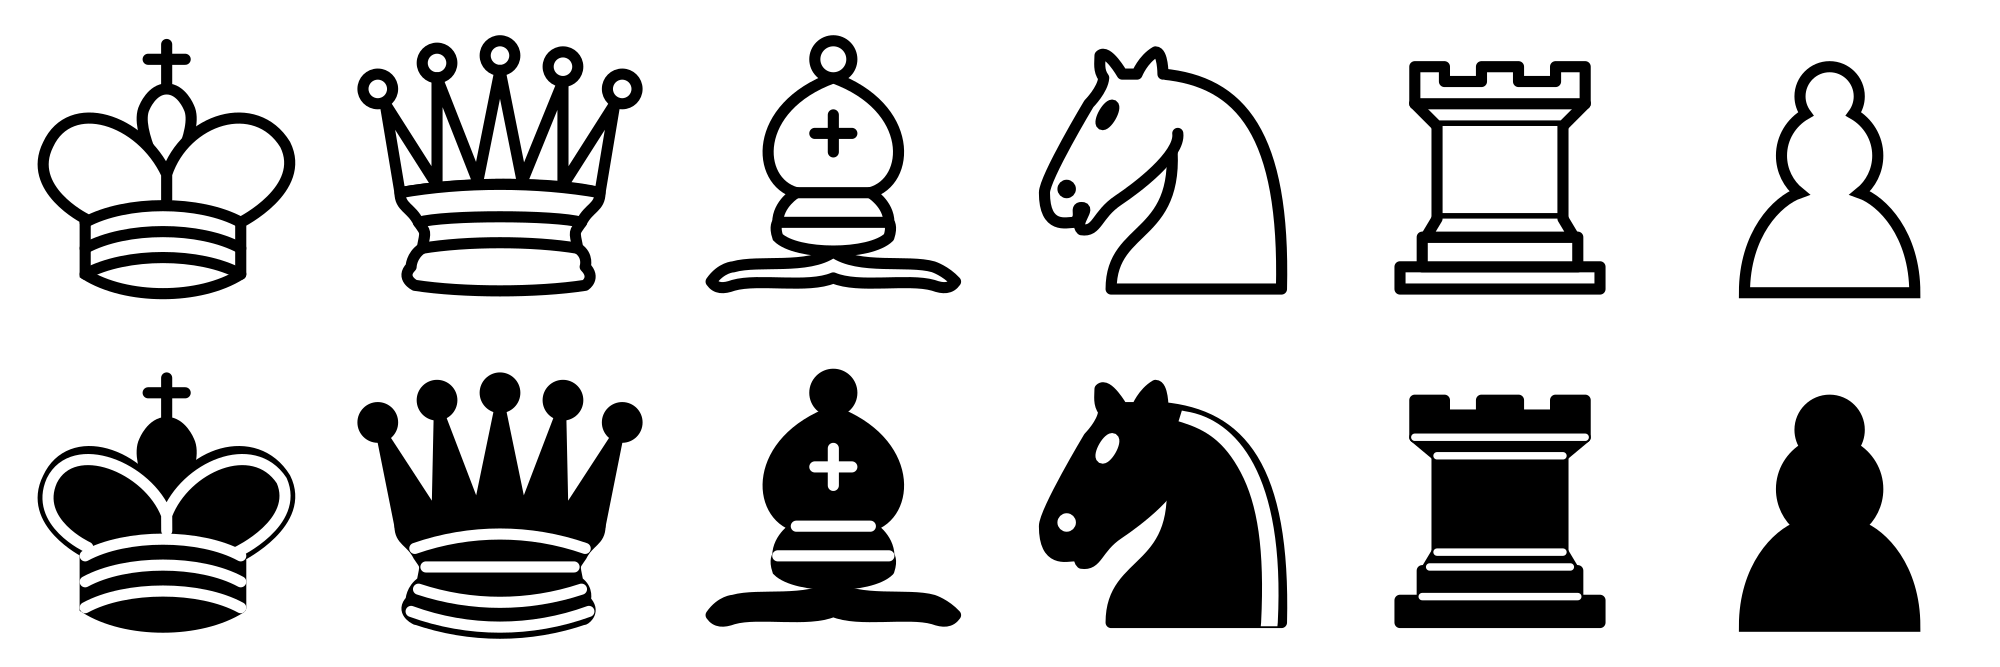 File pieces sprite svg. Queen clipart chess piece